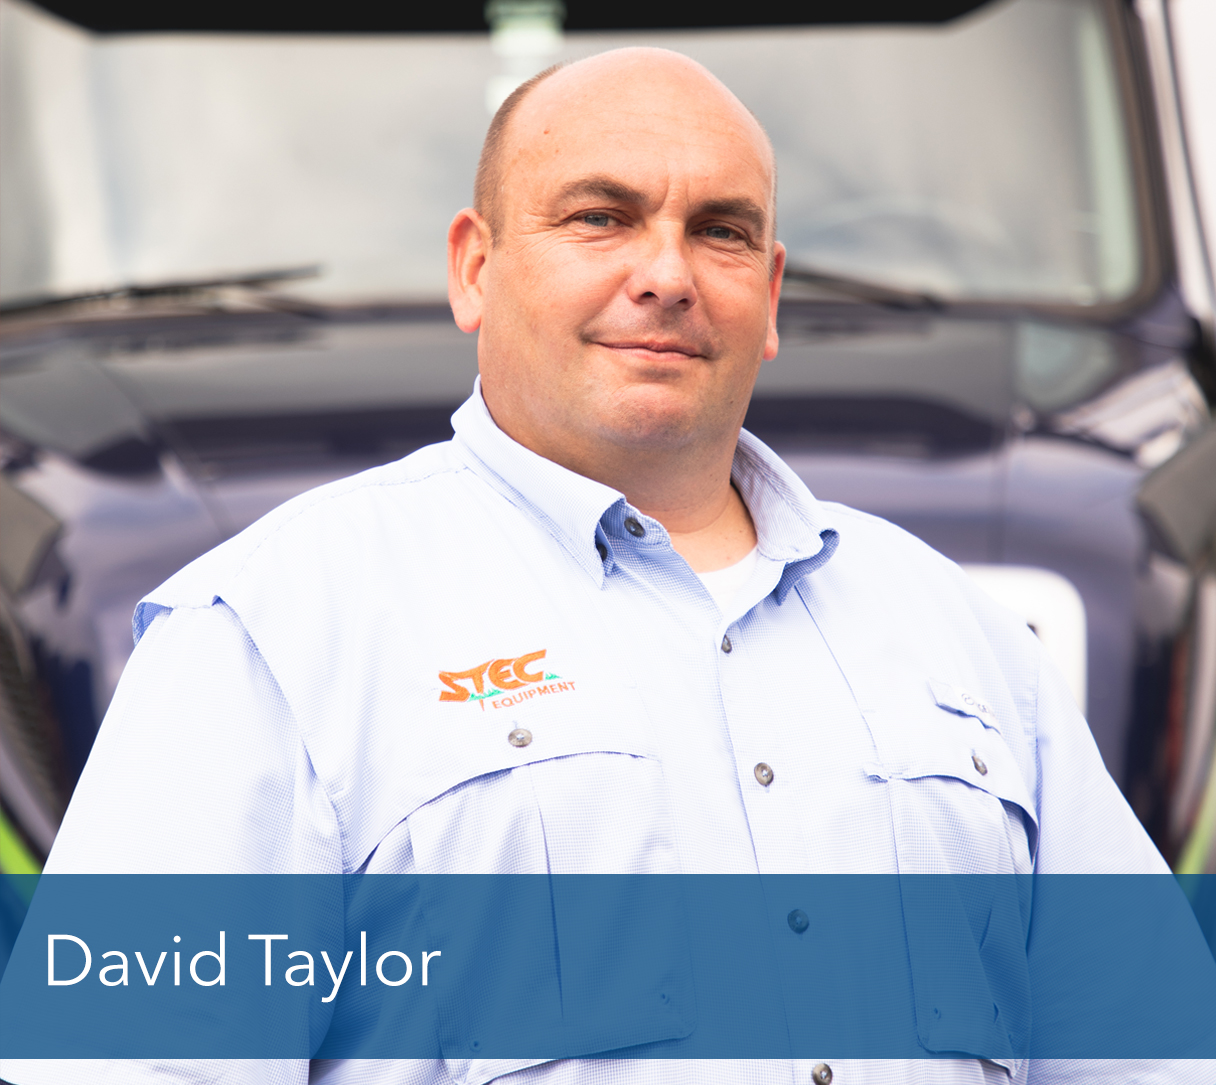 "<b>David Taylor</b>, Owner & President of STEC Equipment<br><p></p>     One of the true benefits of being the owner of an independent company is the ability to have my hands in all aspects of the business. I am never bored as there is always a new project or opportunity to better our business and as a result the experience and service that our customers receive. <p></p>                                       Growing up on a nursery in England definitely influenced and guided the path to where I am today. I was on a piece of equipment around the nursery from an early age and even to this day I am selling, developing & using cutting edge turf grass equipment.  I started out working as a demonstrator for New Holland Agriculture and then was hired by BLEC Landscaping Equipment. It was through my job at BLEC that I came to America in 2002. 6 years later I was able to create and establish STEC and we have been expanding and growing ever since. On a personal note I can say with great pride that I was able to become a US Citizen in 2018.<p></p>                                       I have also created a great life here outside of STEC while I have been here. I have been married to Robyn since 2006. I also have 2 great kids, Allie & Will, who keep us busy with all of their extracurricular activities. I enjoy working on and around equipment and spend a lot of my spare time using that equipment on projects at our house. <p></p>                                       ""The answer is always YES!"" I think one of the greatest things in this world is that there is always an opportunity out there, you just have to be willing to take it. I have tried to model this behavior by coming to America, starting STEC and so many other minor decisions in my life that have gotten me to where I am.<p></p>                                       As the president and owner of STEC I am always trying to make it better, not only for our customers but for our employees & distributors as well. I am of the belief that taking care of people pays off in immeasurable dividends and also helps STEC be more successful. I have applied that philosophy to the community that I live in as well and try to help out and give back to it in as many ways that I possibly can using my knowledge and expertise wherever I can."